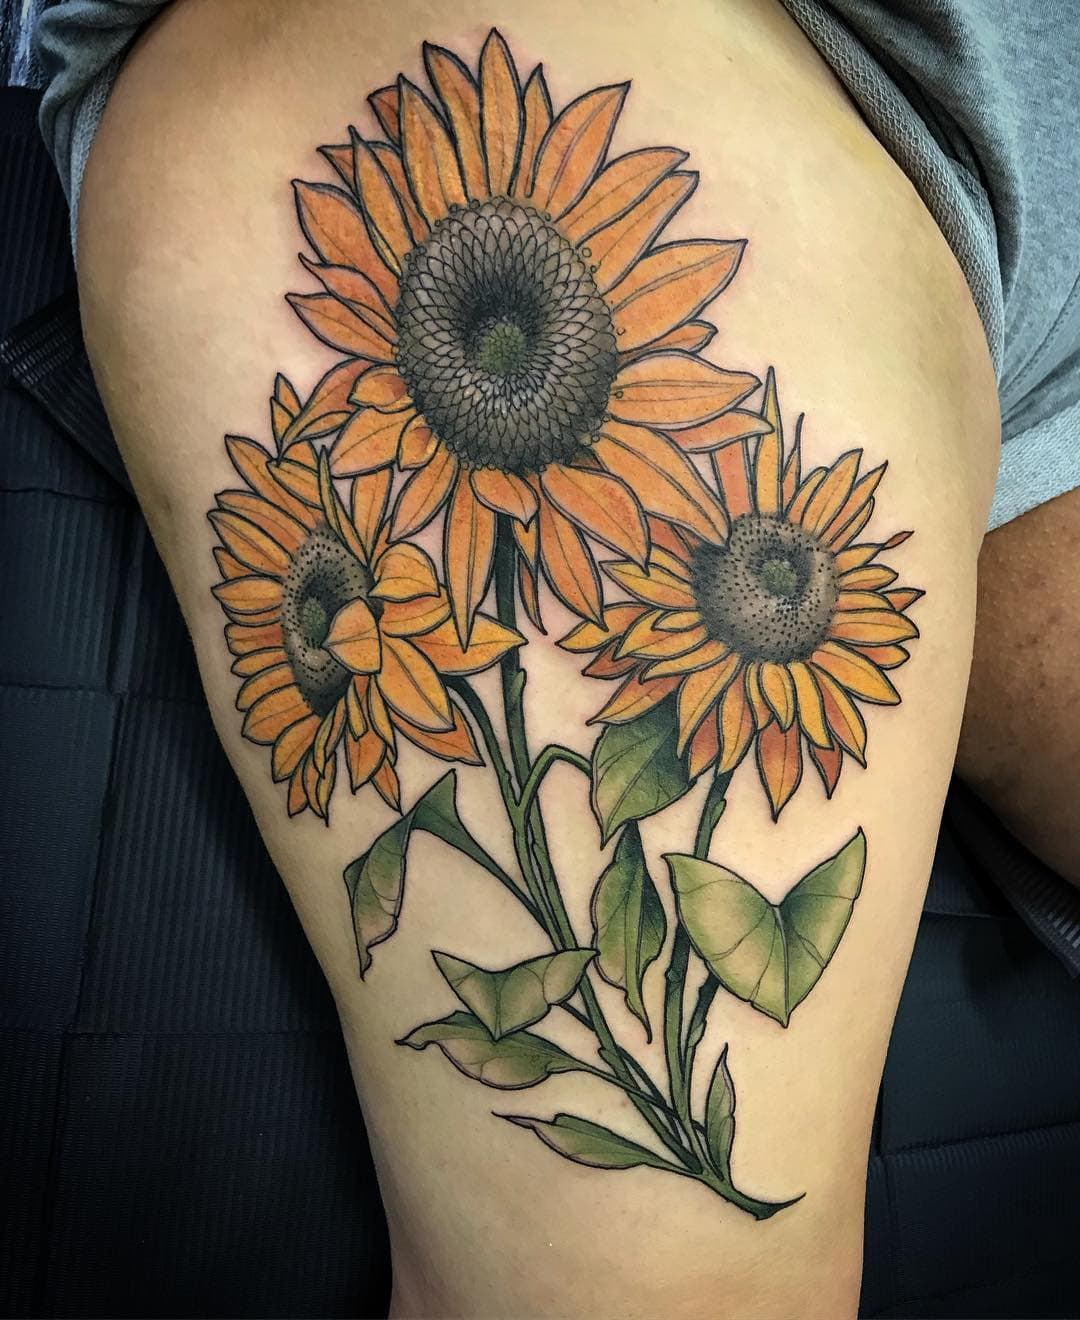 155 Sunflower Tattoos That Will Make You Glow Wild Tattoo Art